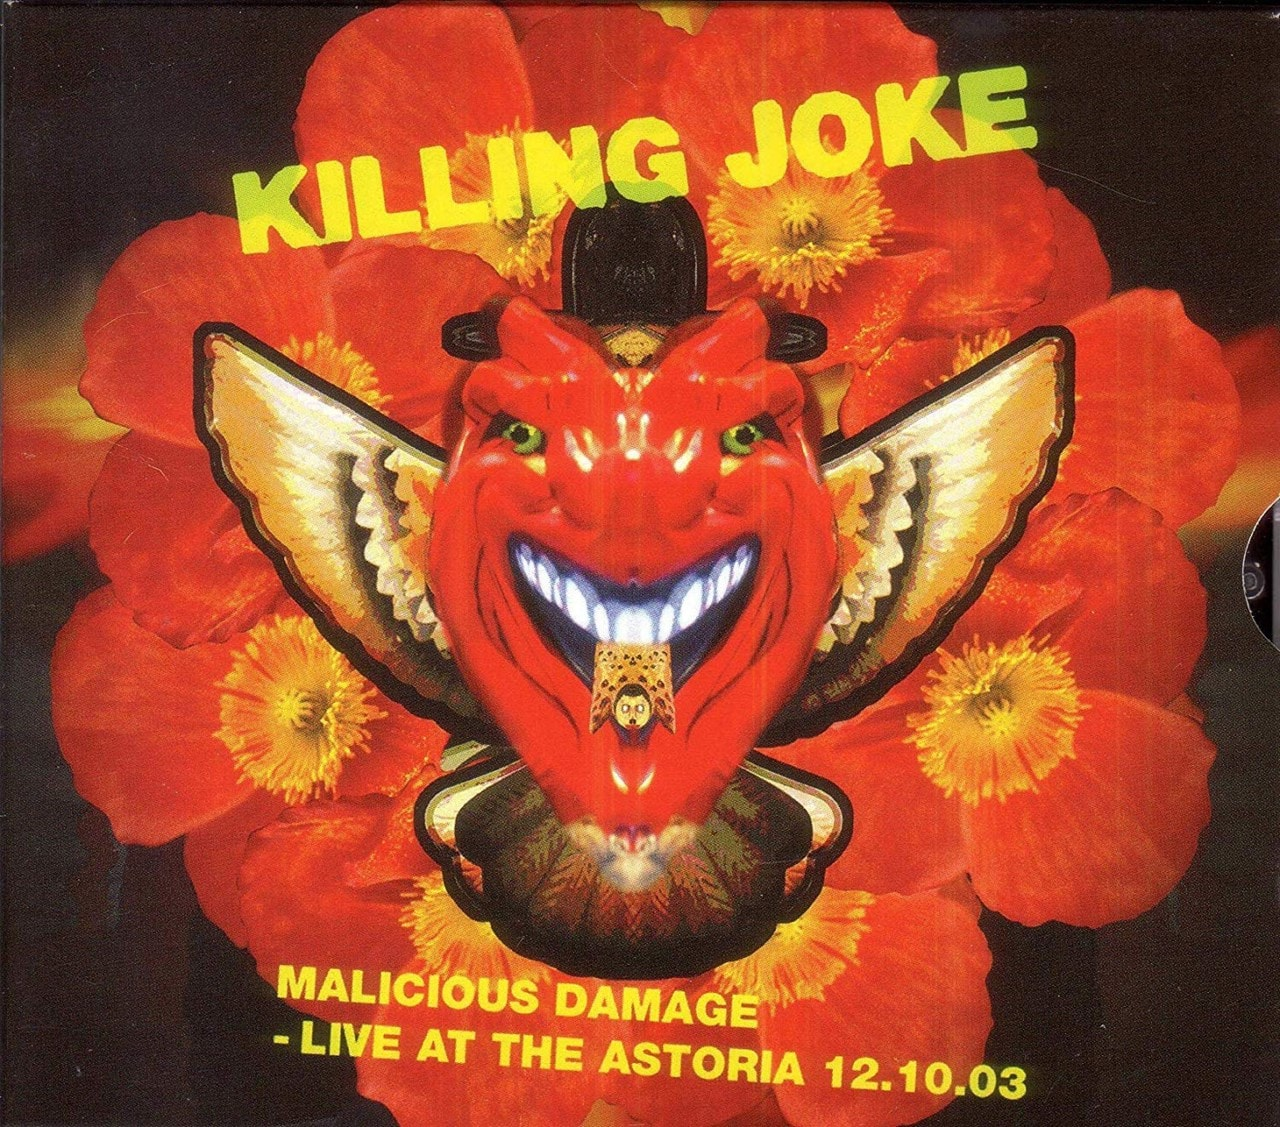 Malicious Damage: Live at the Astoria 12.10.03 - 1